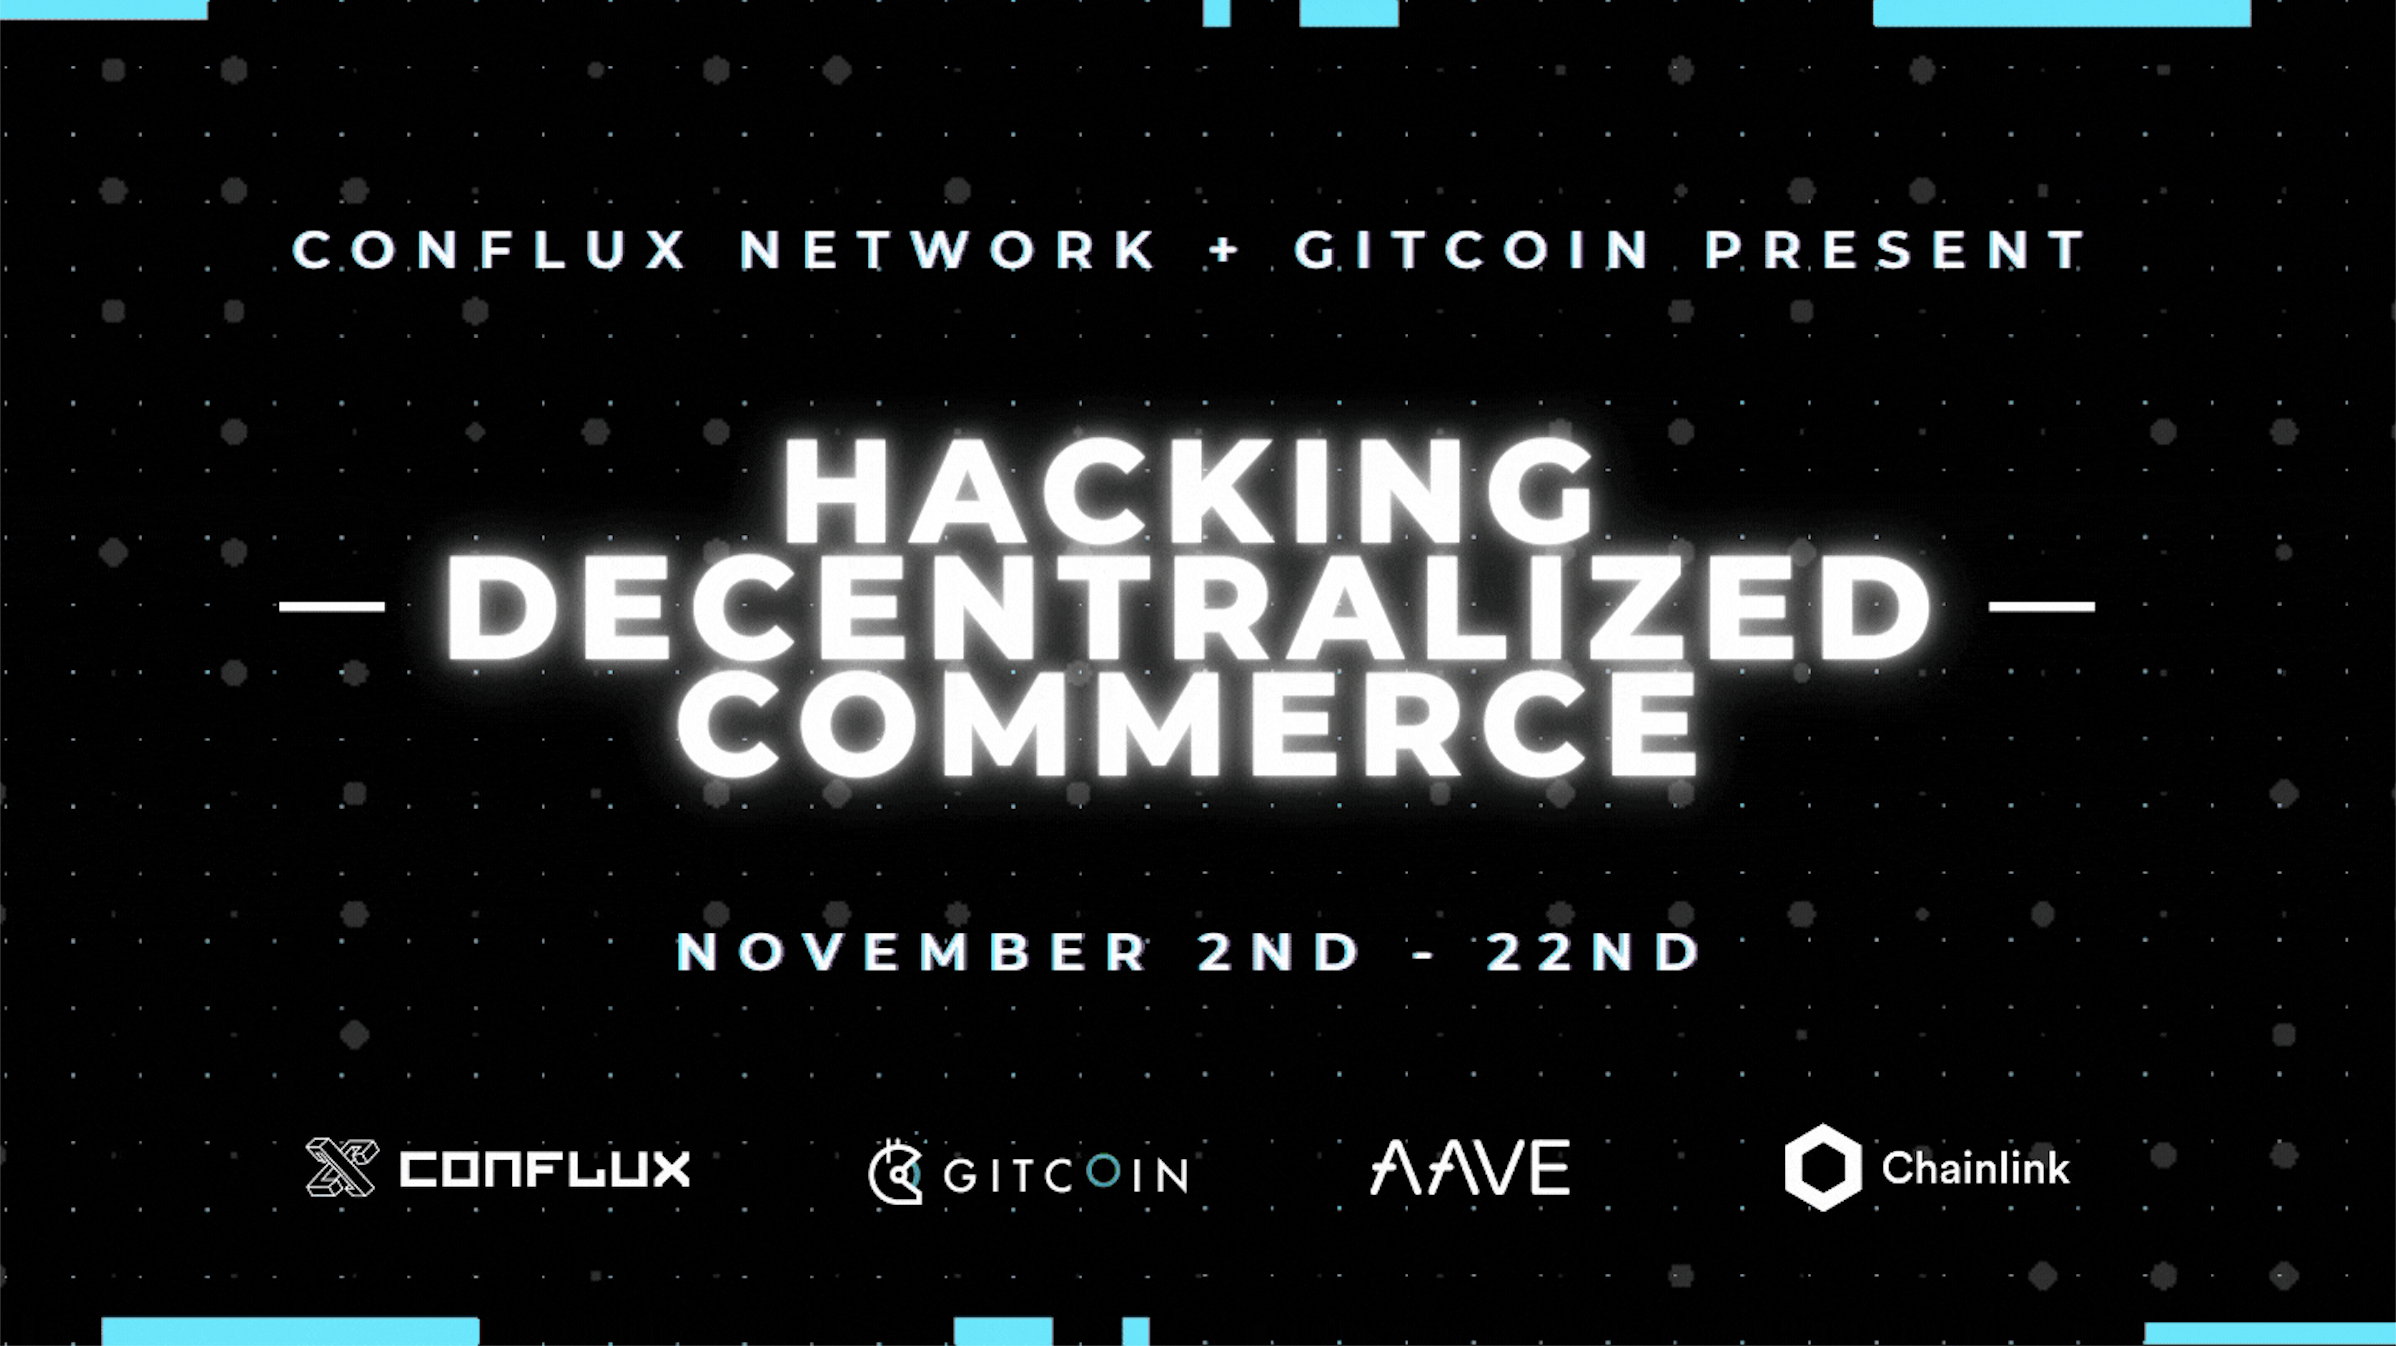 Hacking Decentralized Commerce with Conflux, Gitcoin, AAVE and Chainlink